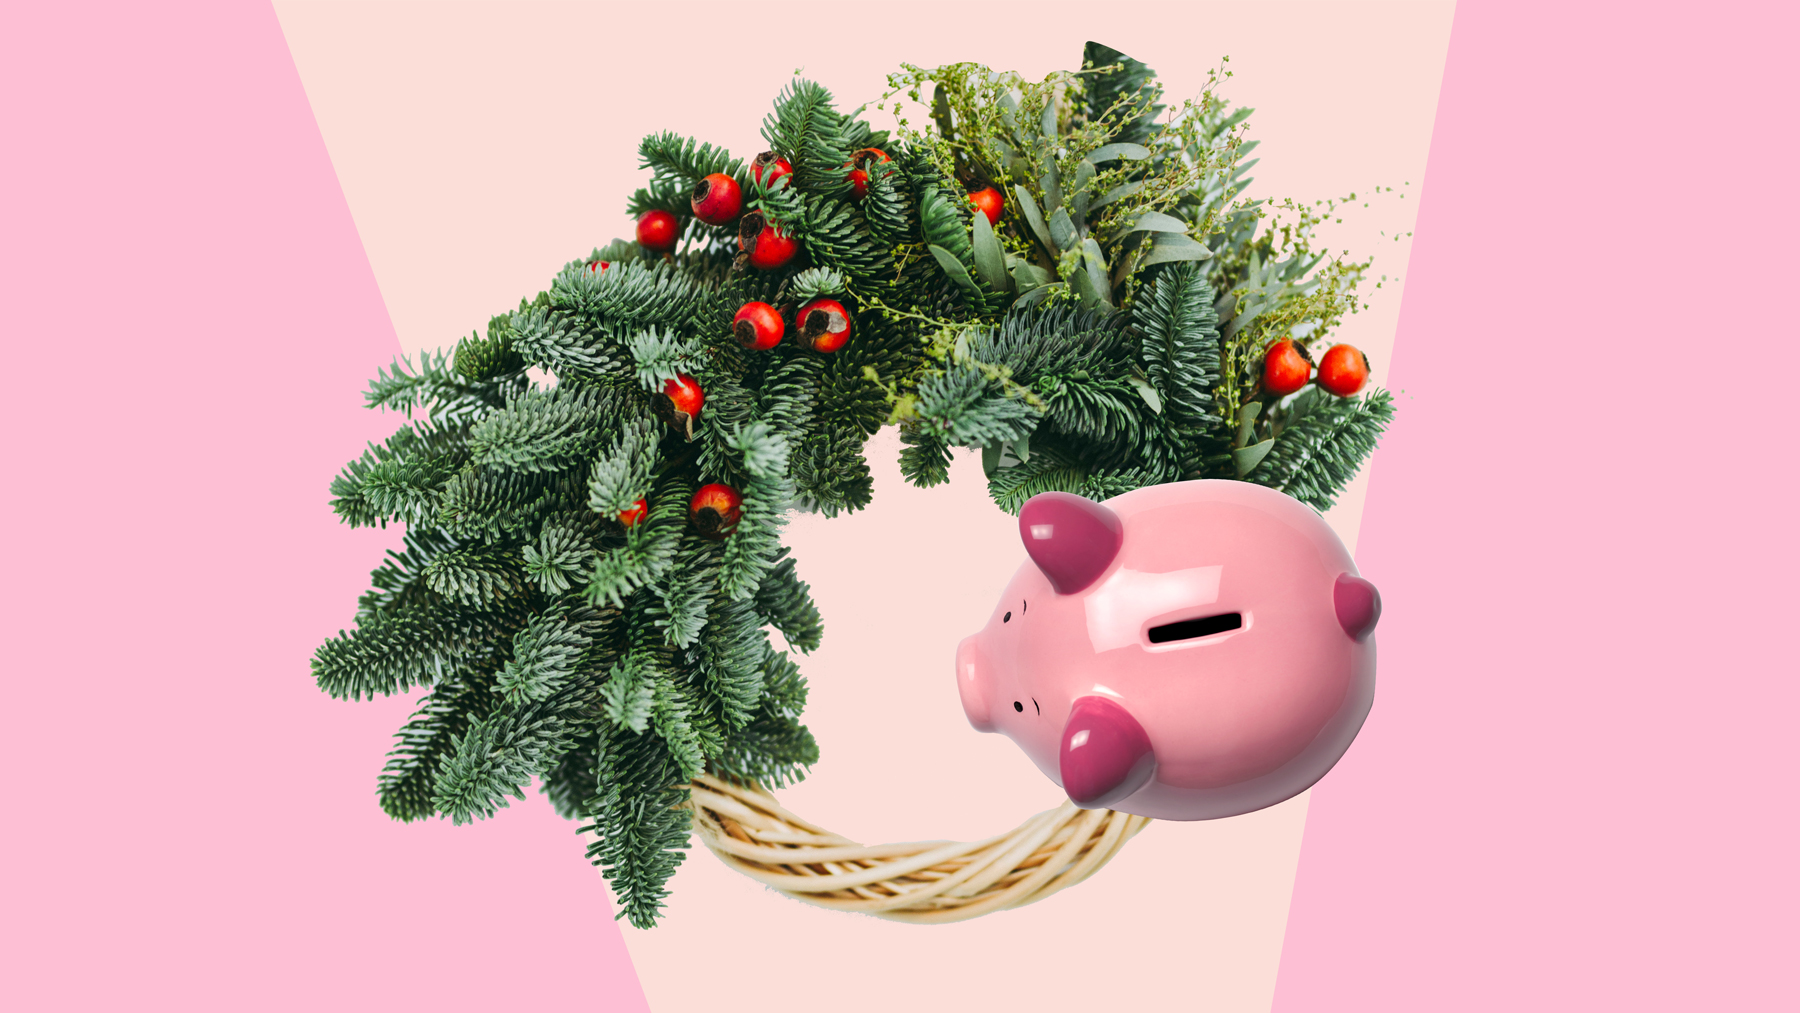 How to save money during the holidays - expert tips